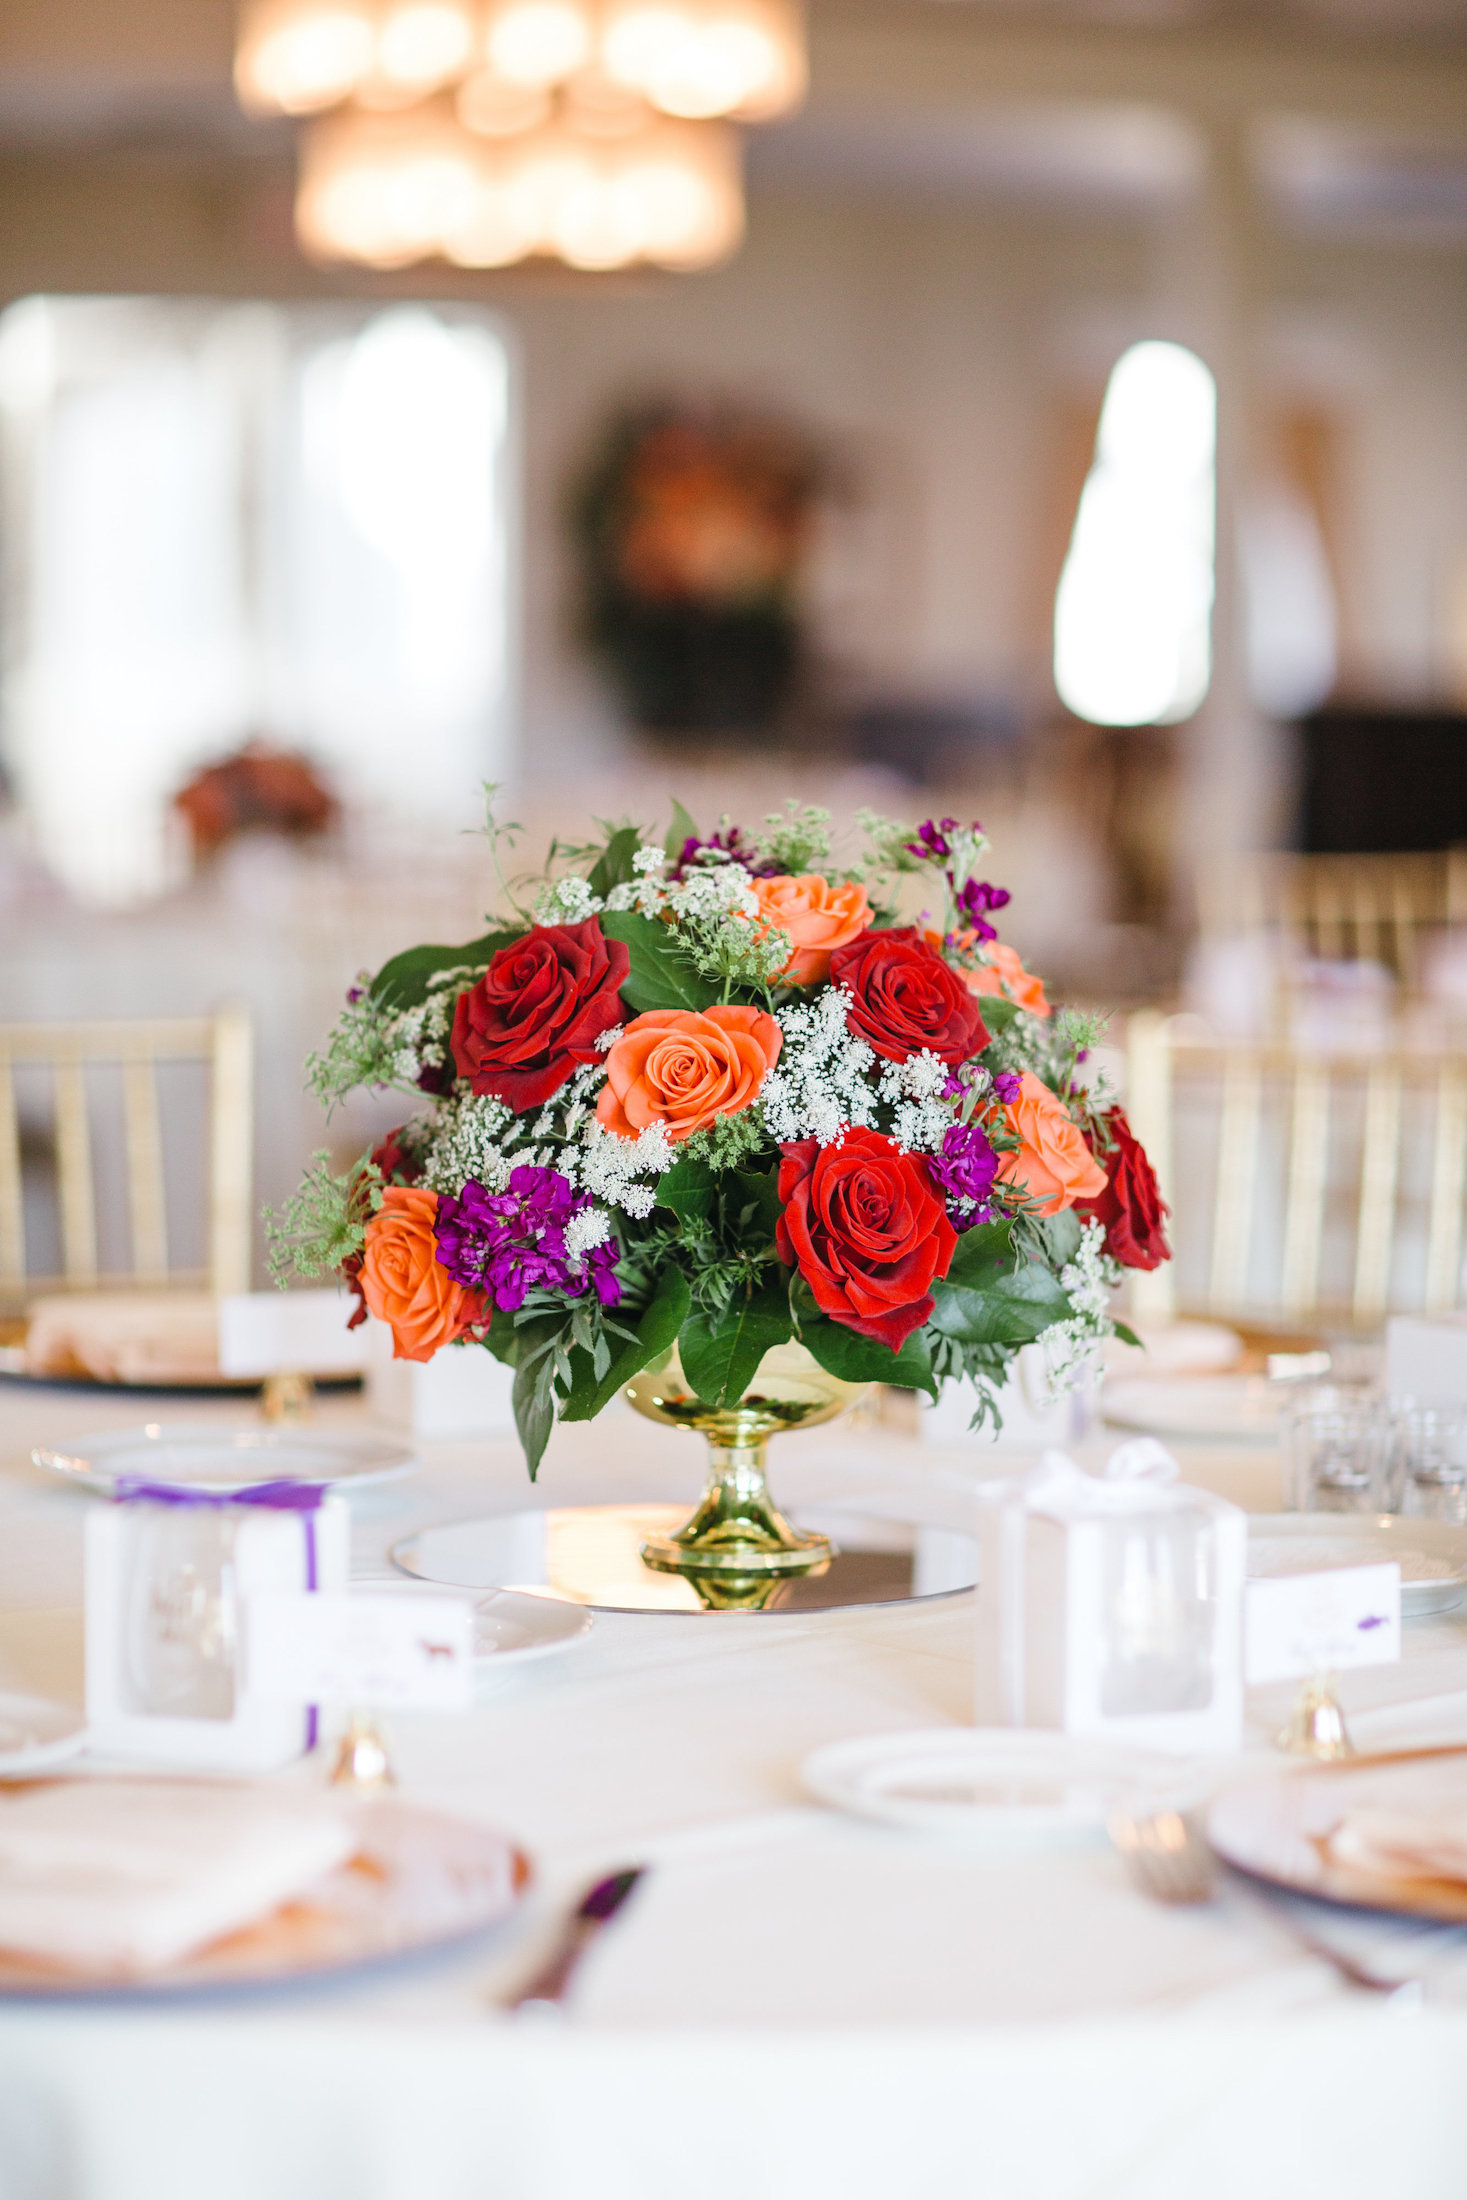 Best event planners in Ashburn, VA